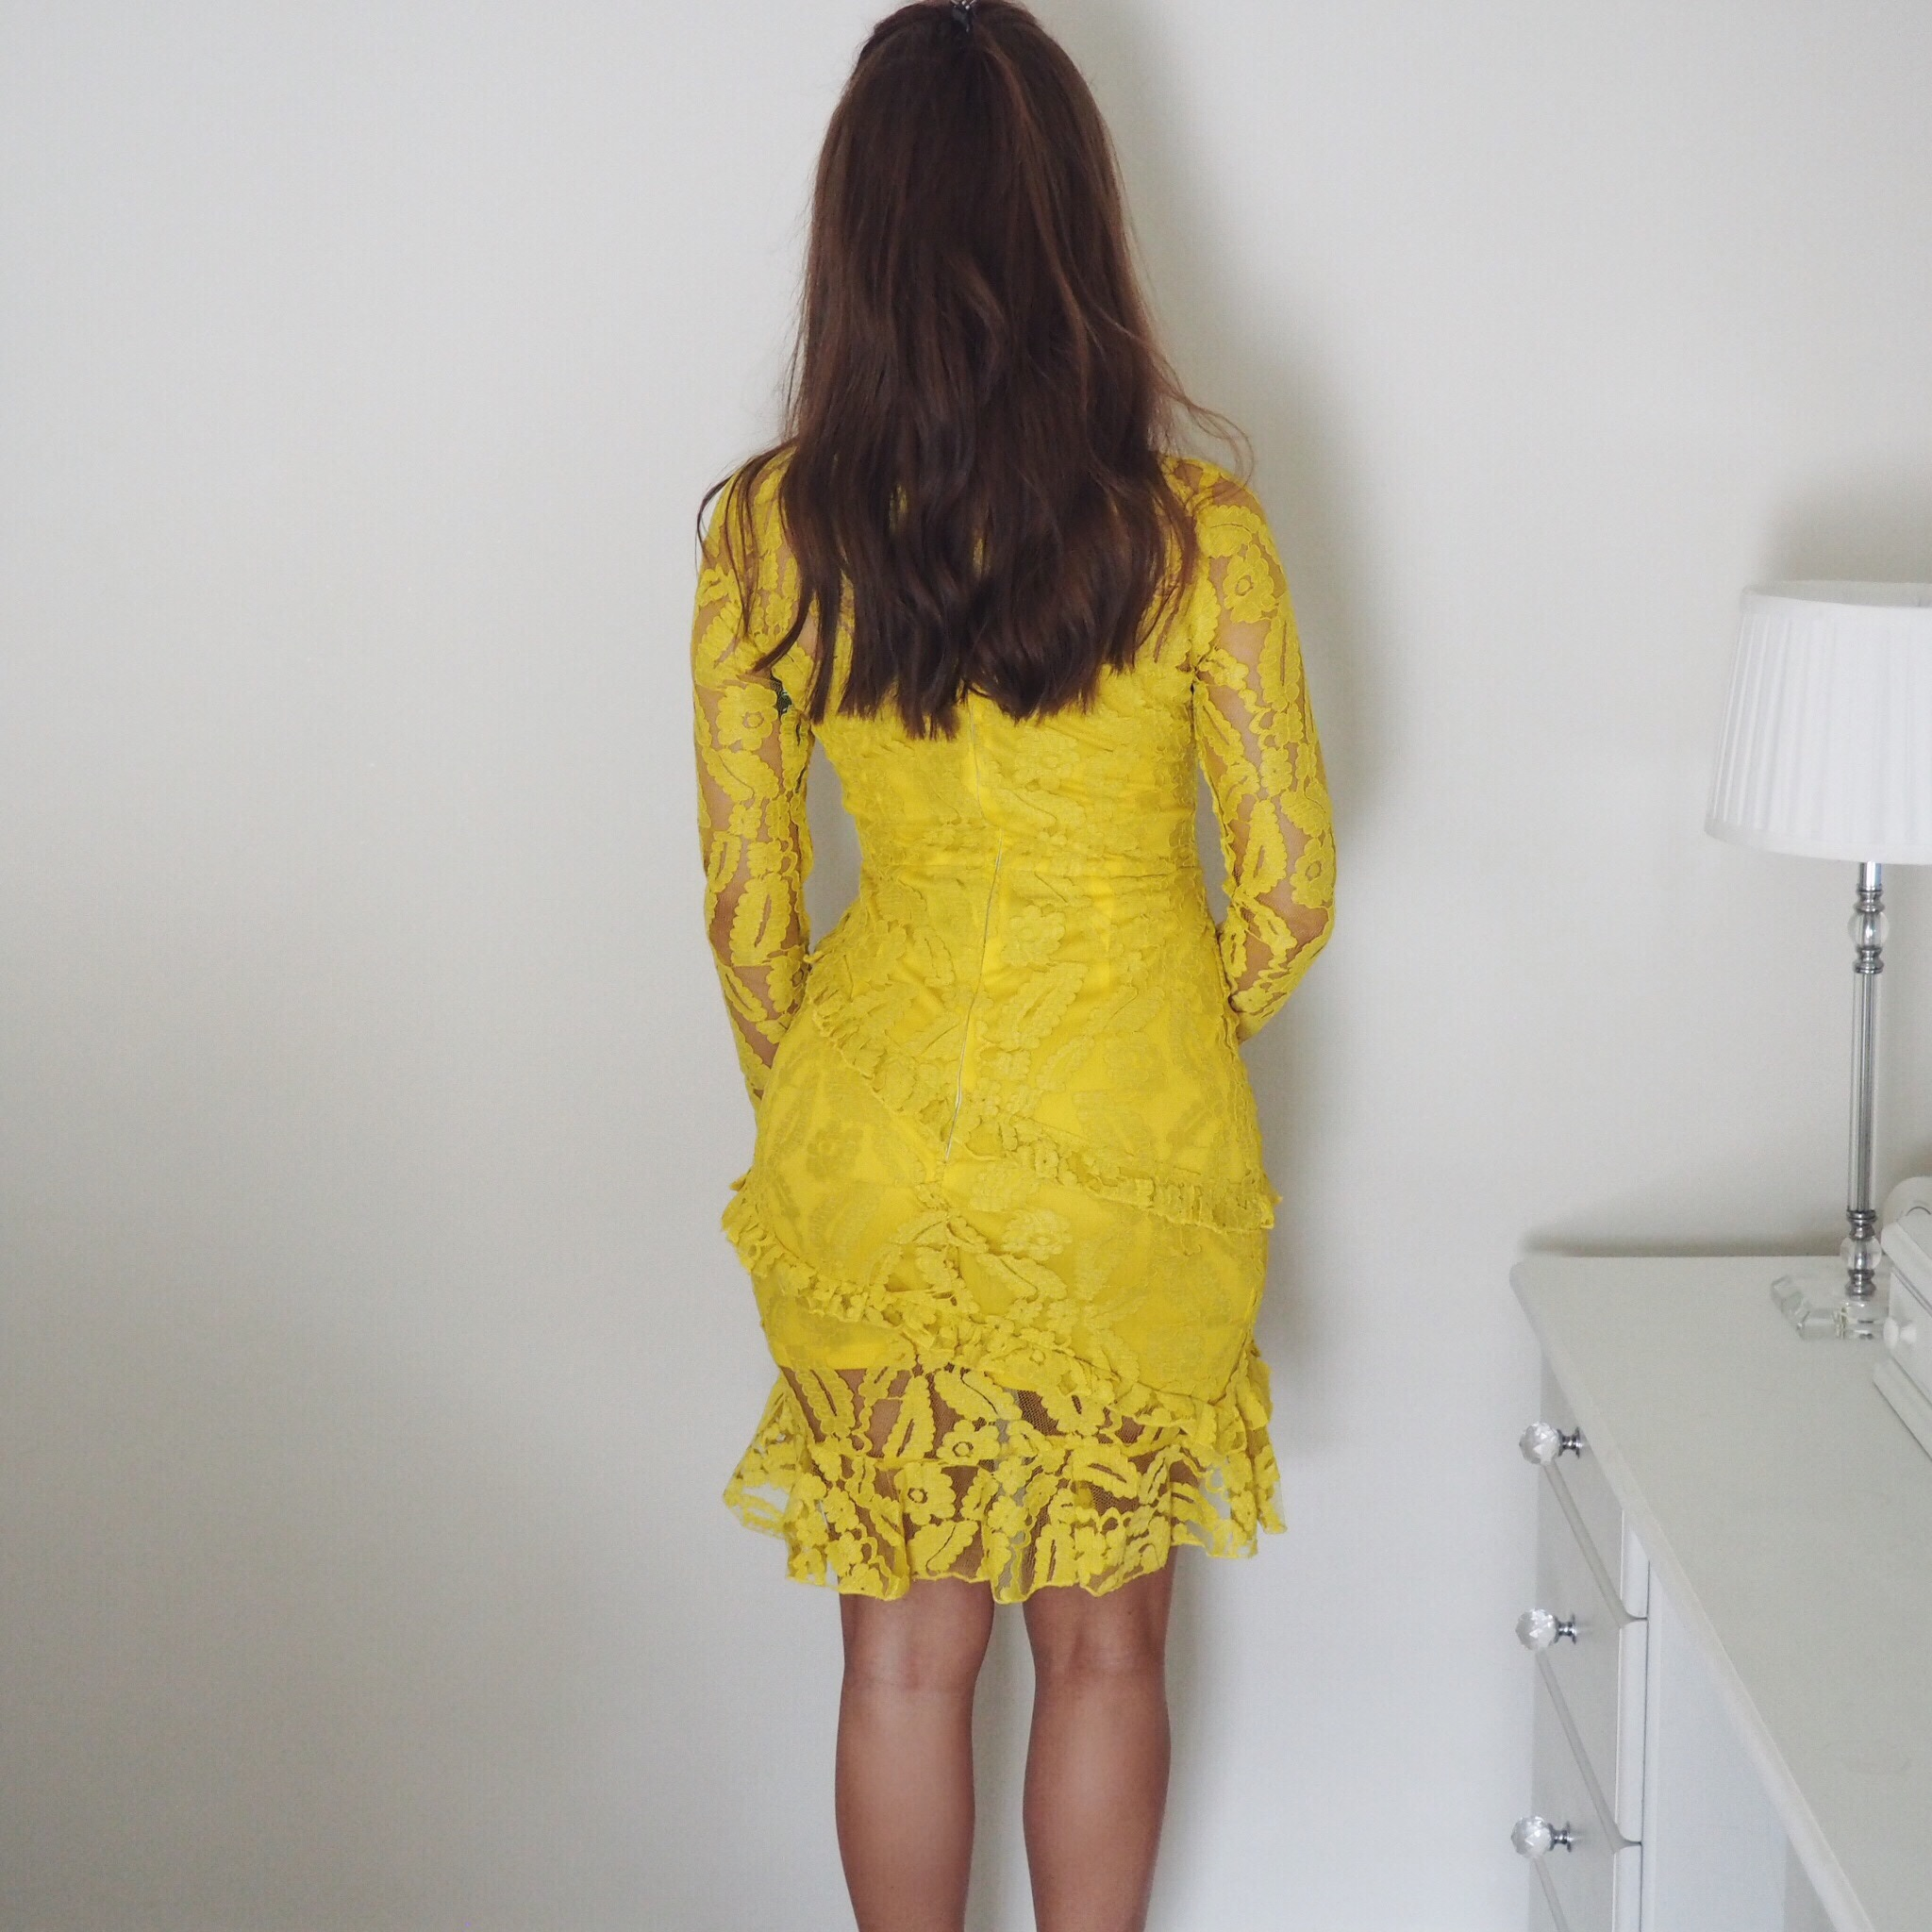 Yellow lace dress by PrettyLittleThing